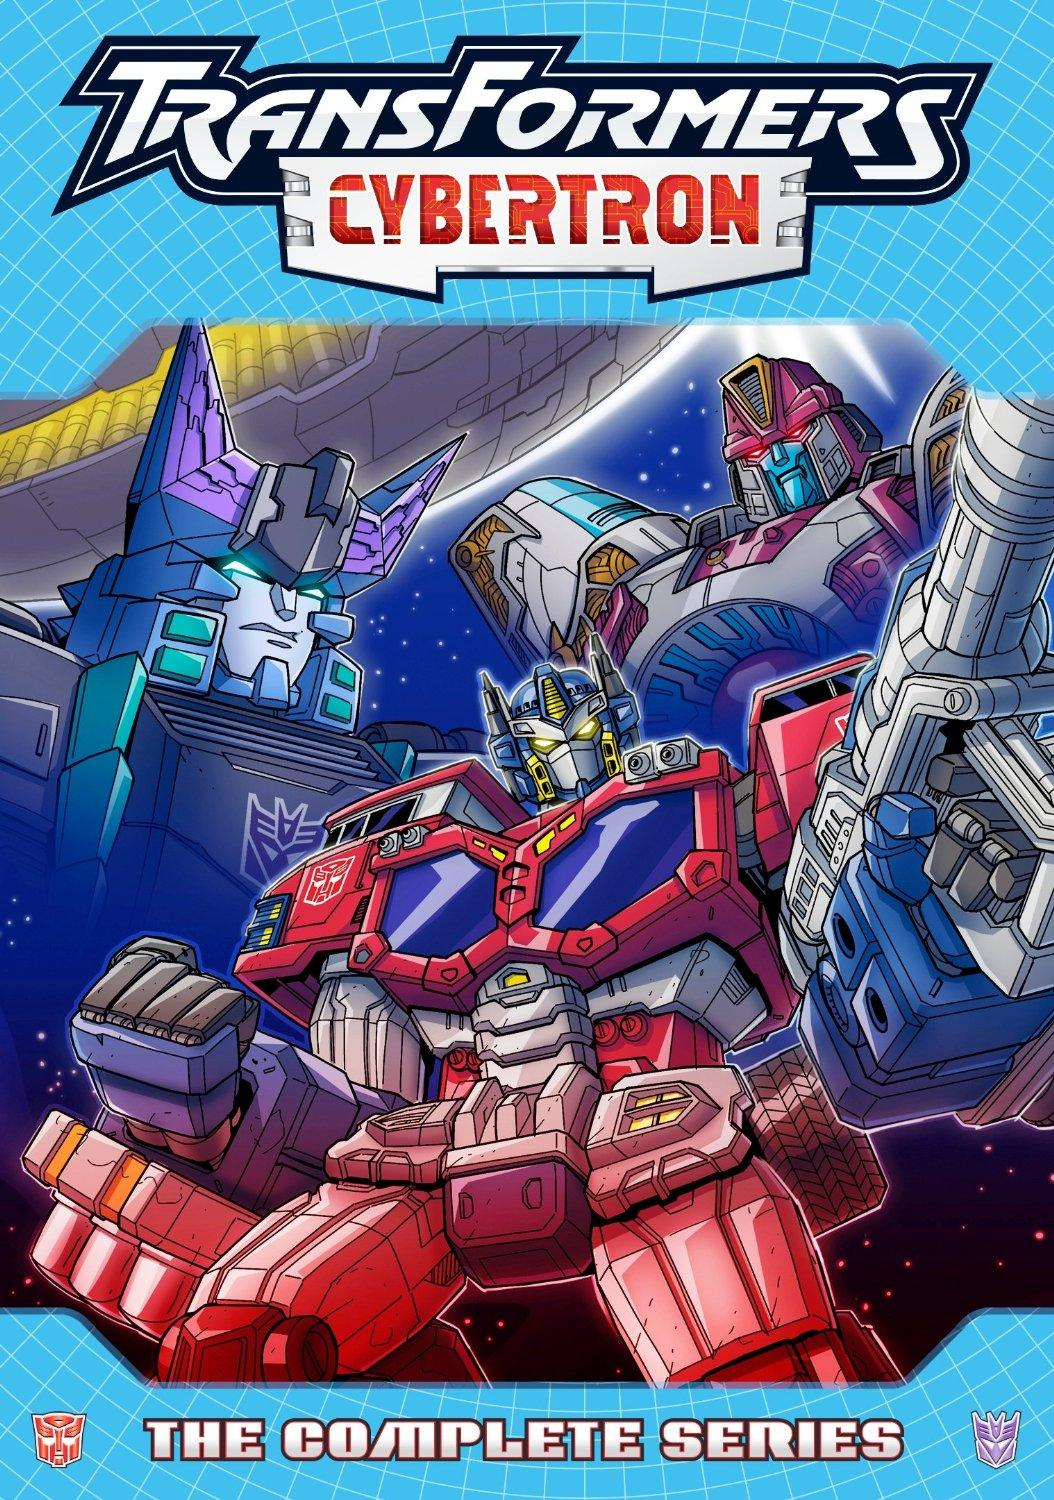 Transformers: Cybertron; DVD Review!